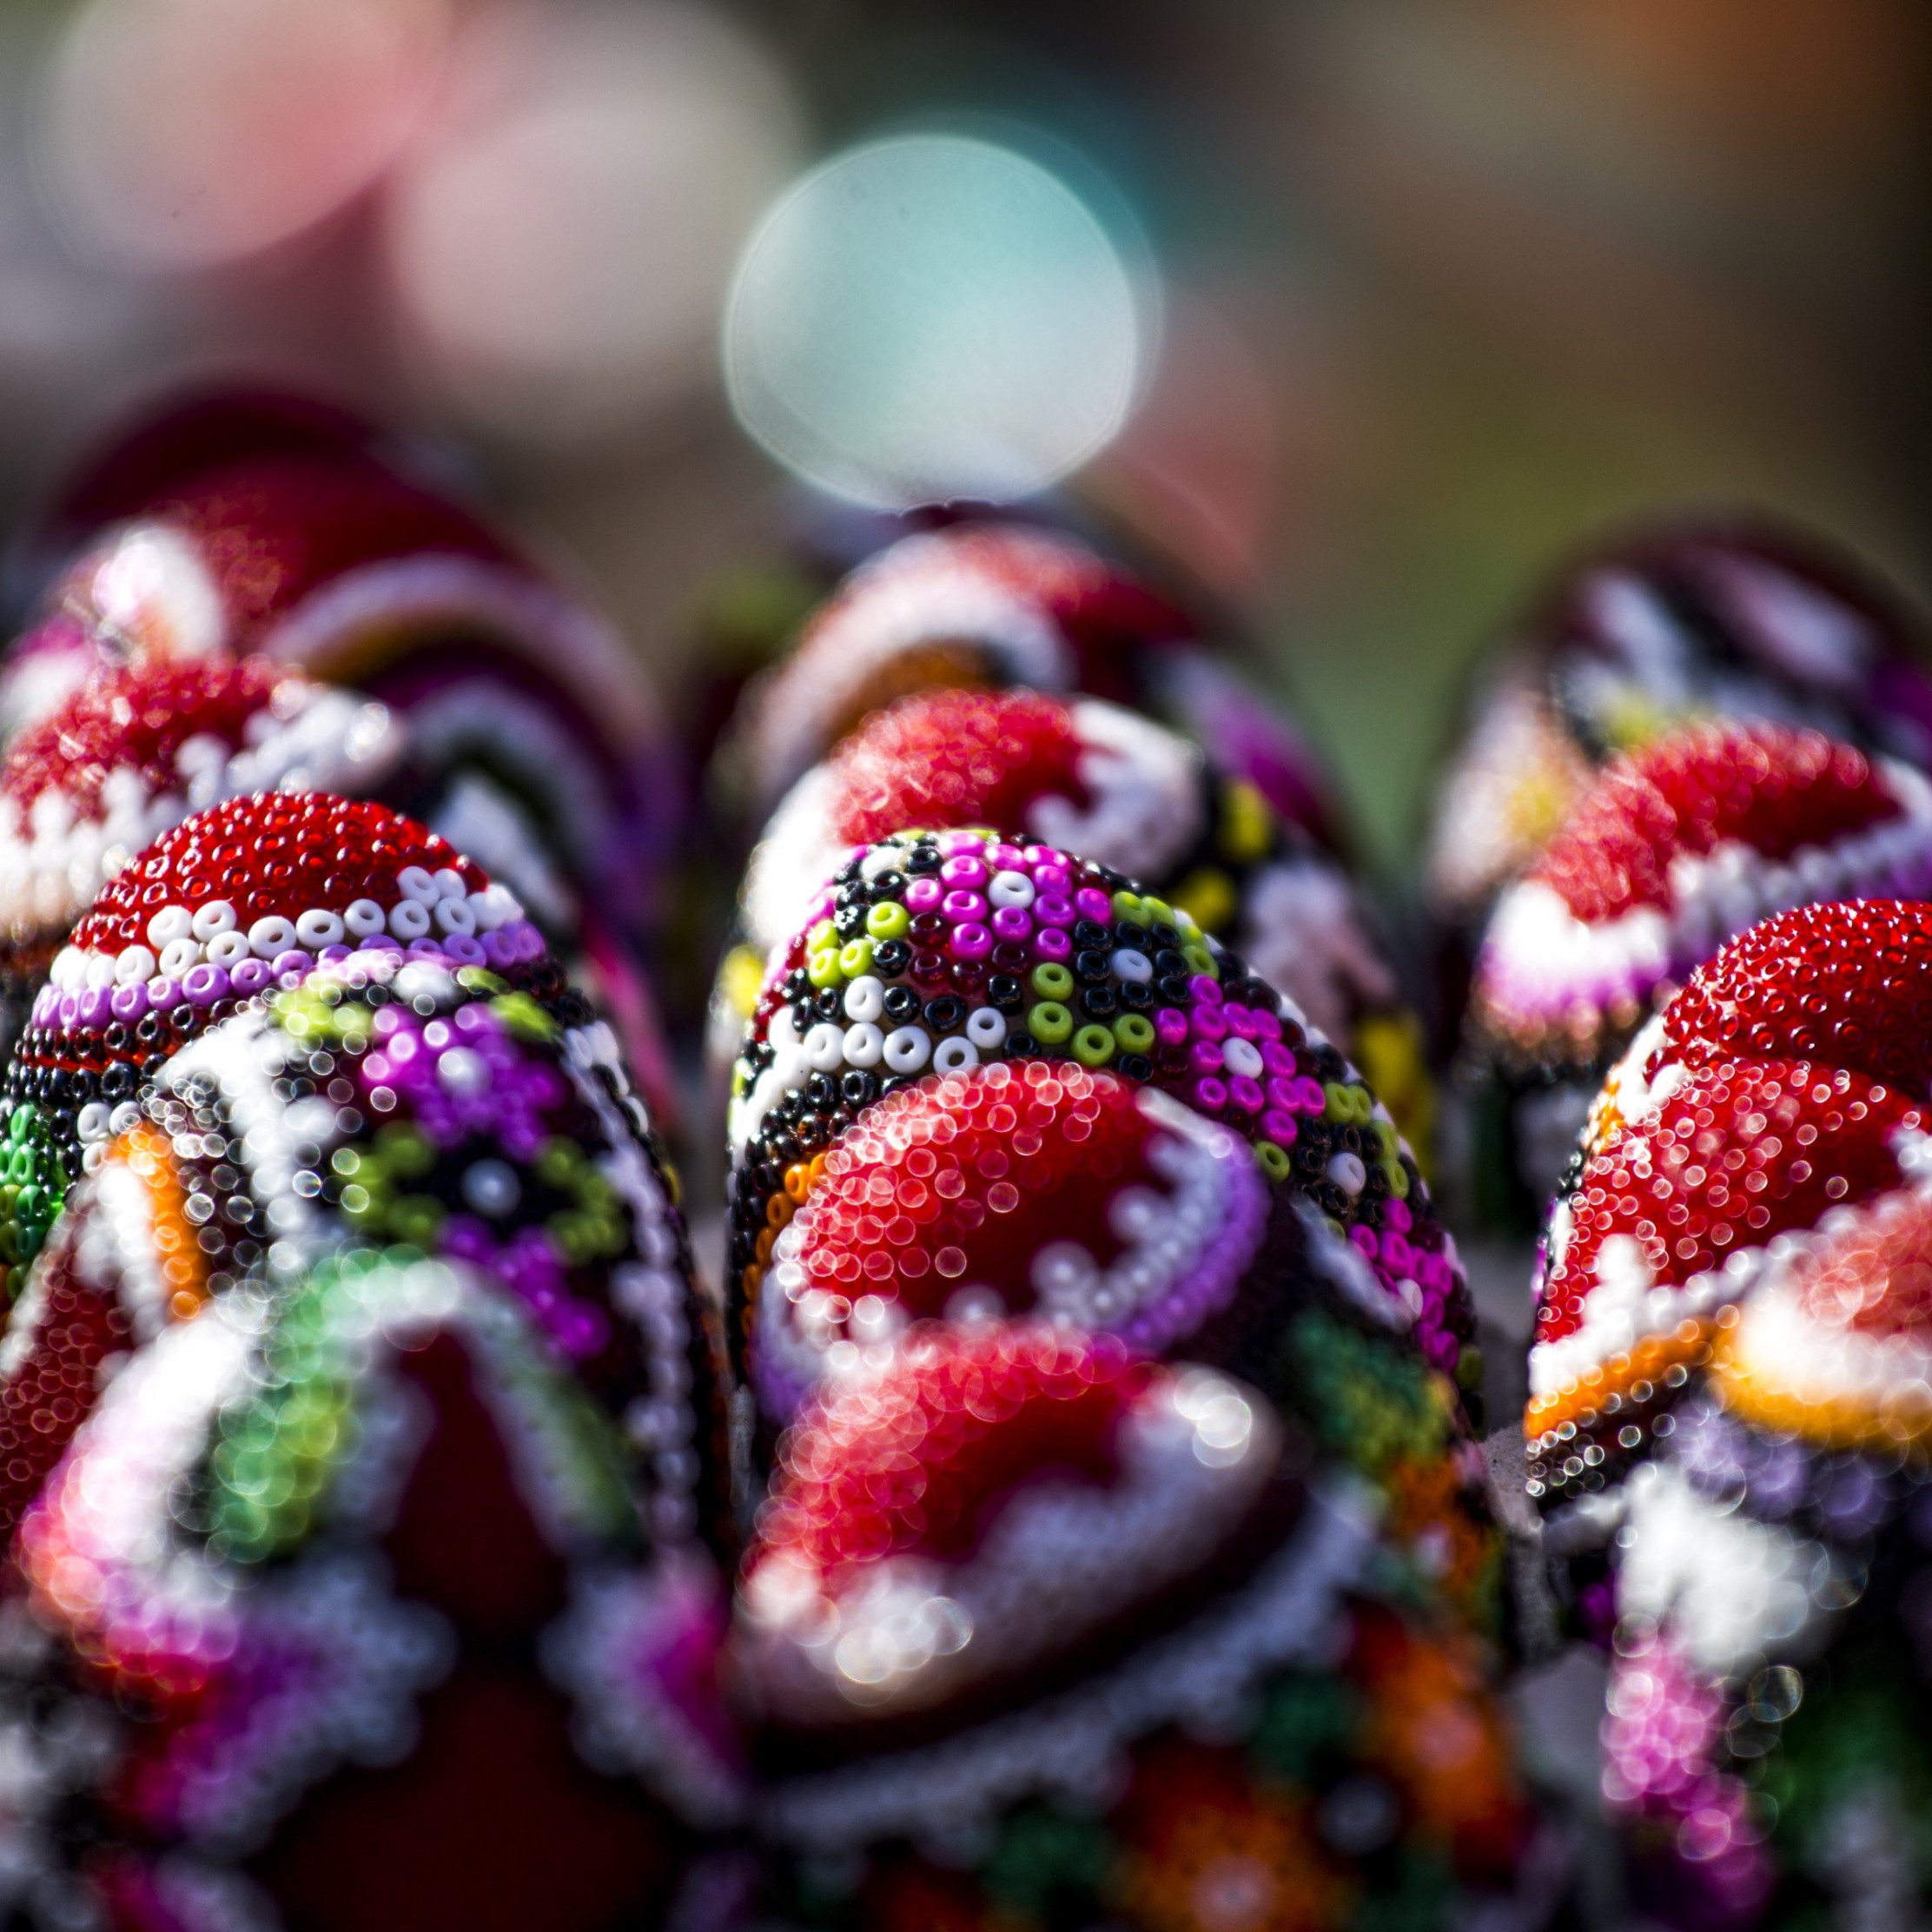 Easter eggs from Bucovina, Romania | 2224x2224 wallpaper